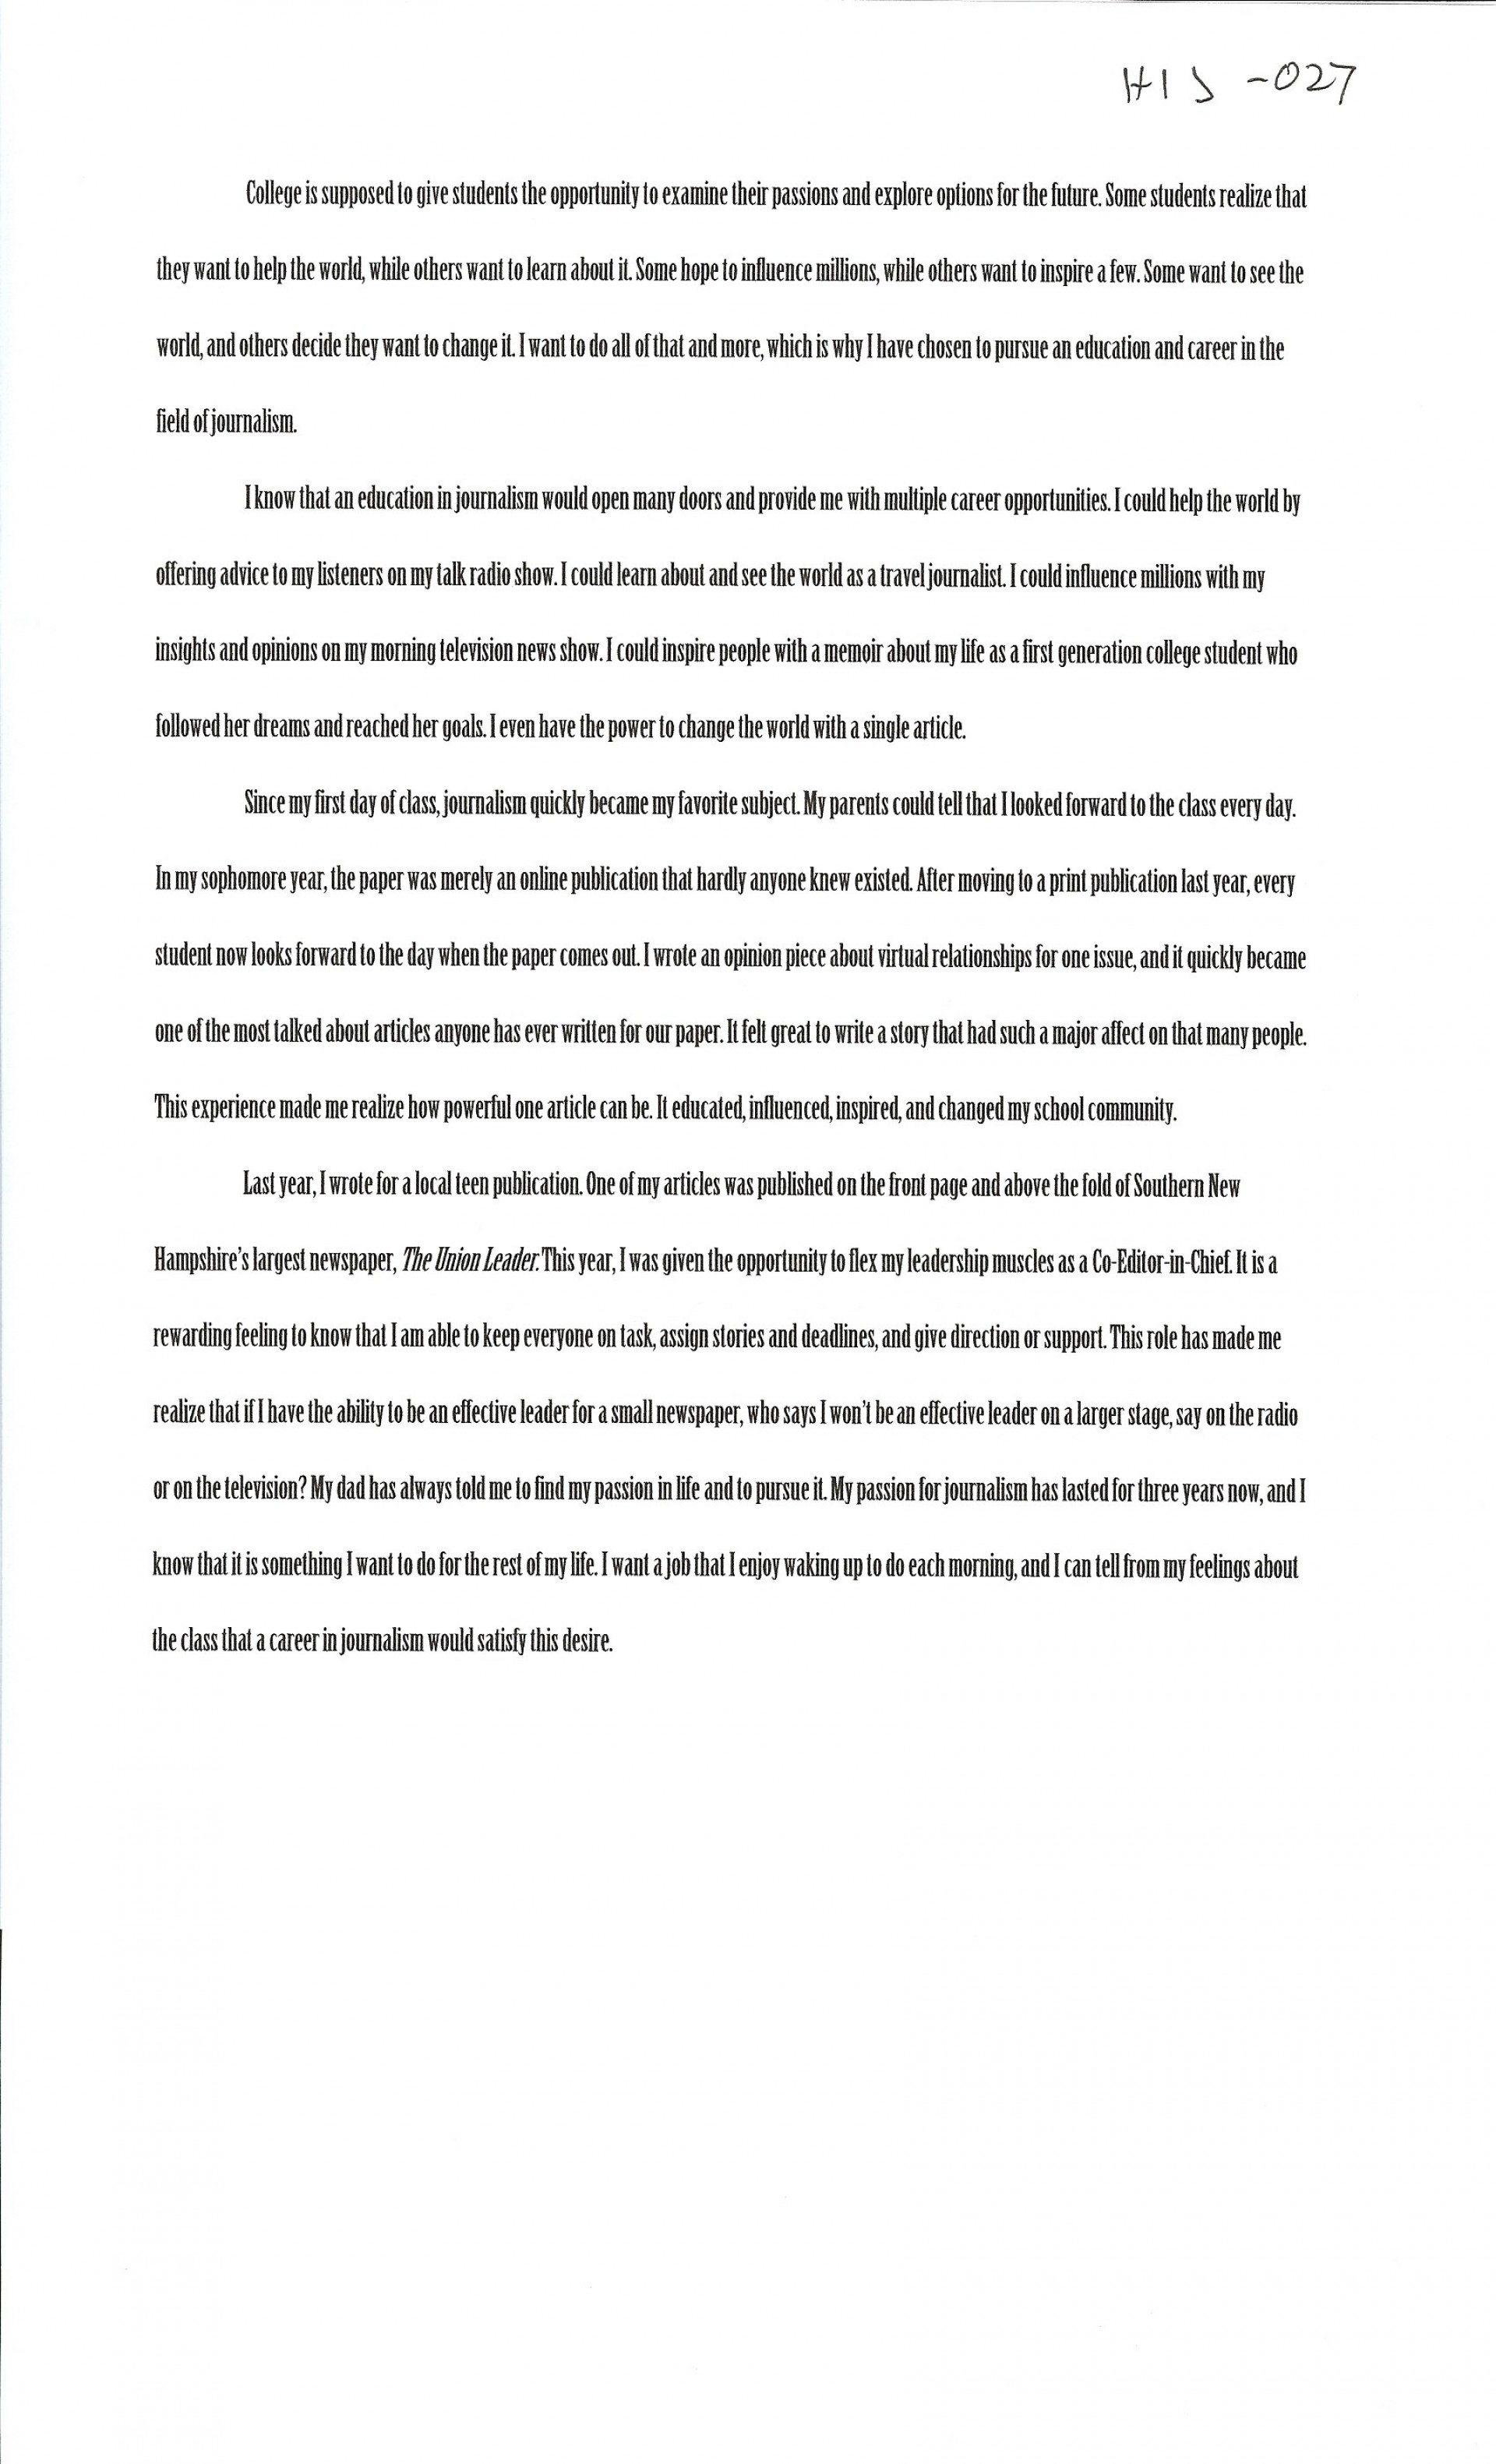 026 Alexa Serrecchia Essay Example Scholarships With Singular Essays Without Writing For High School Juniors Class Of 2020 No 2019 1920